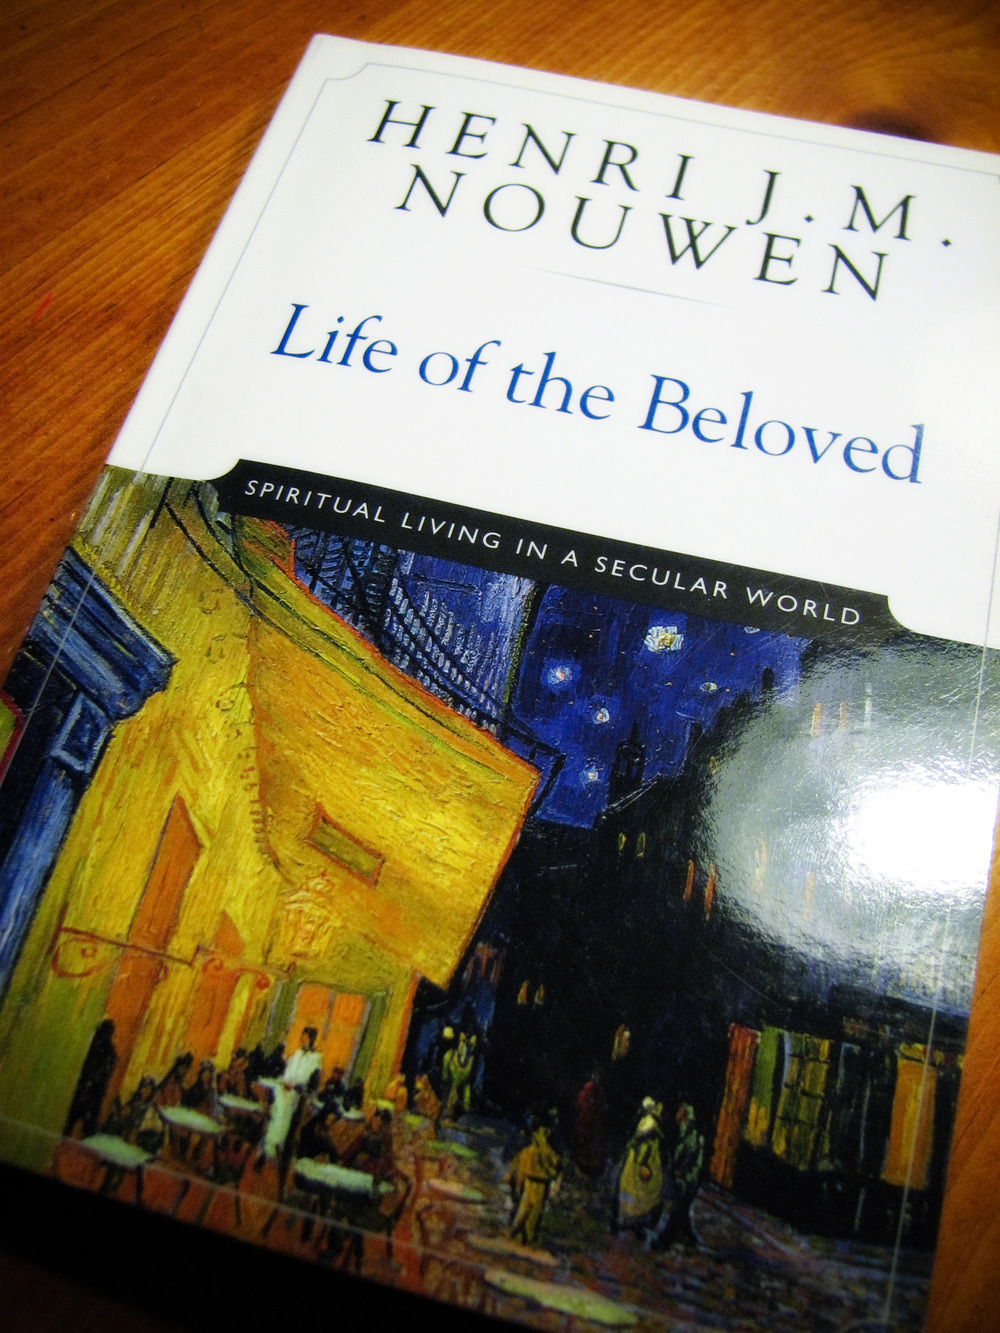 Henri Nouwen: Life of the Beloved (Book)